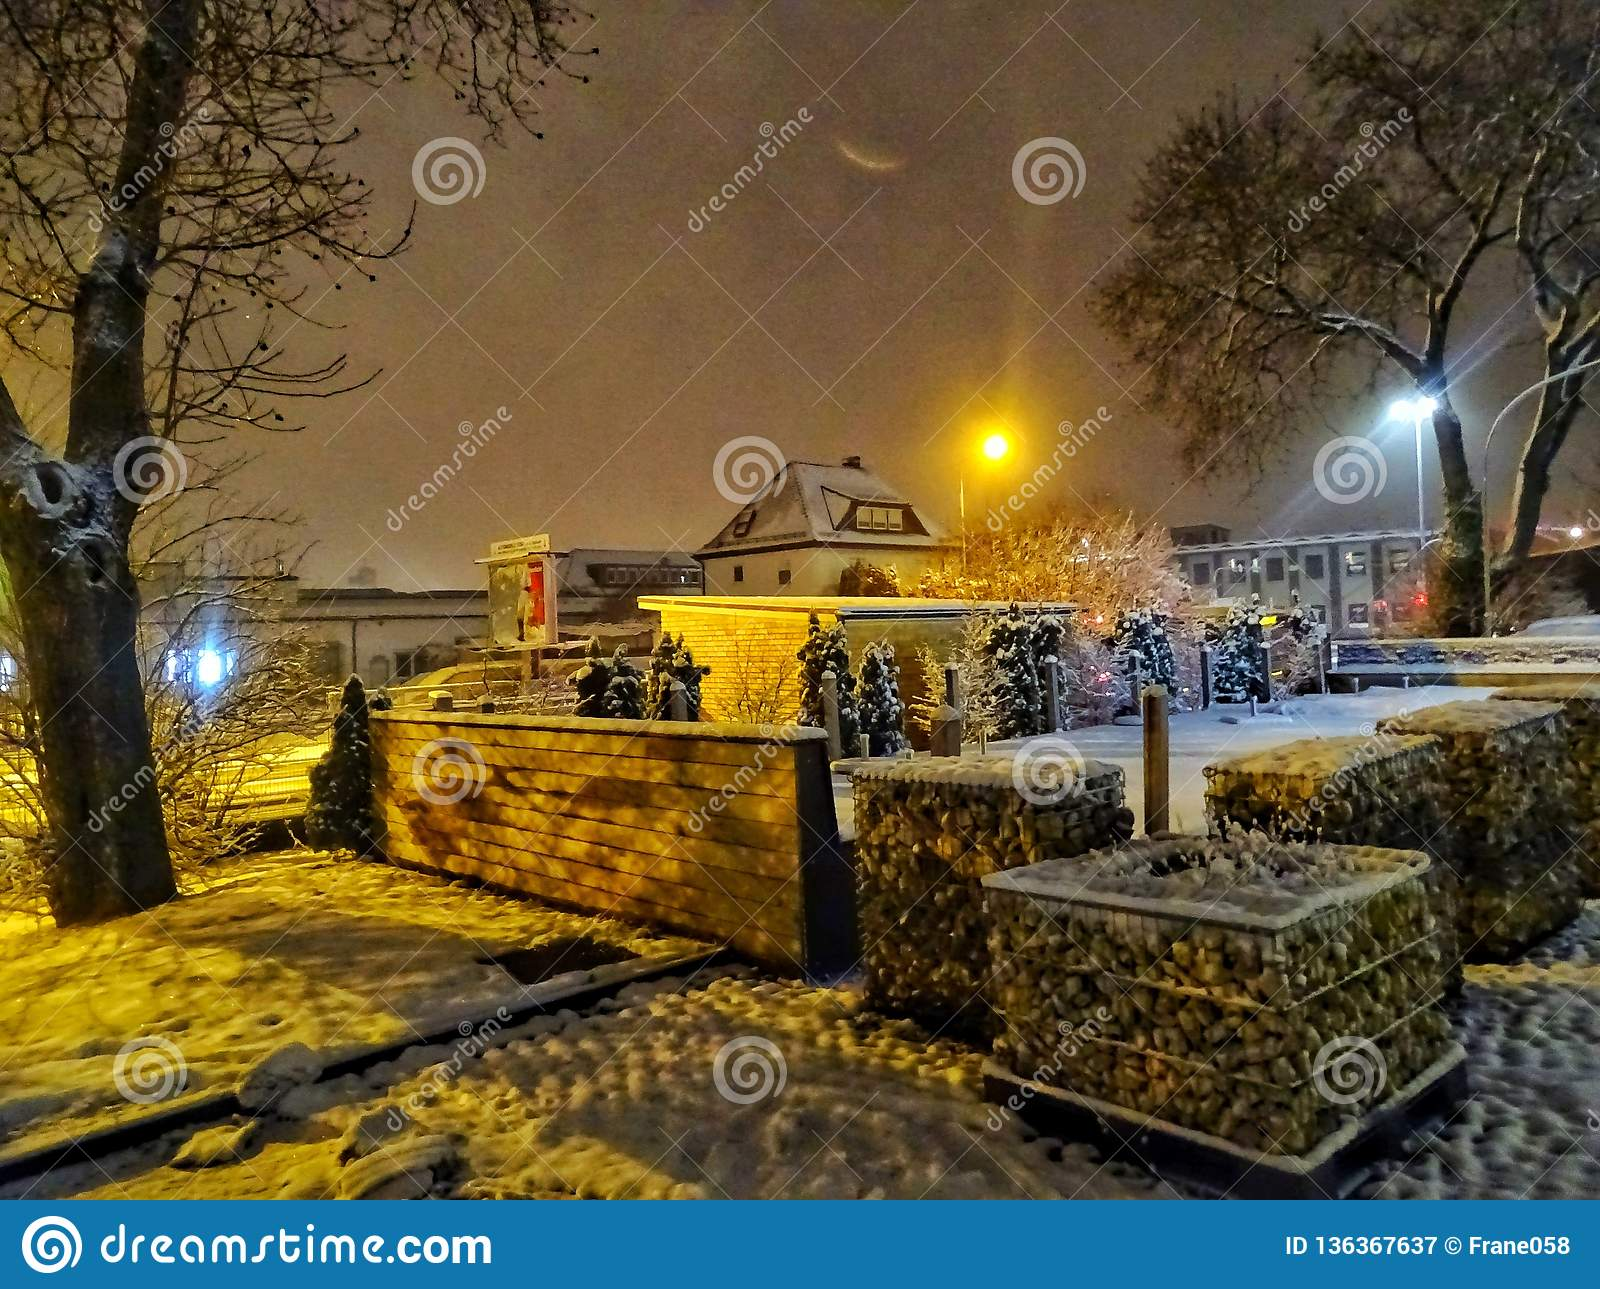 Winter idilic night scene